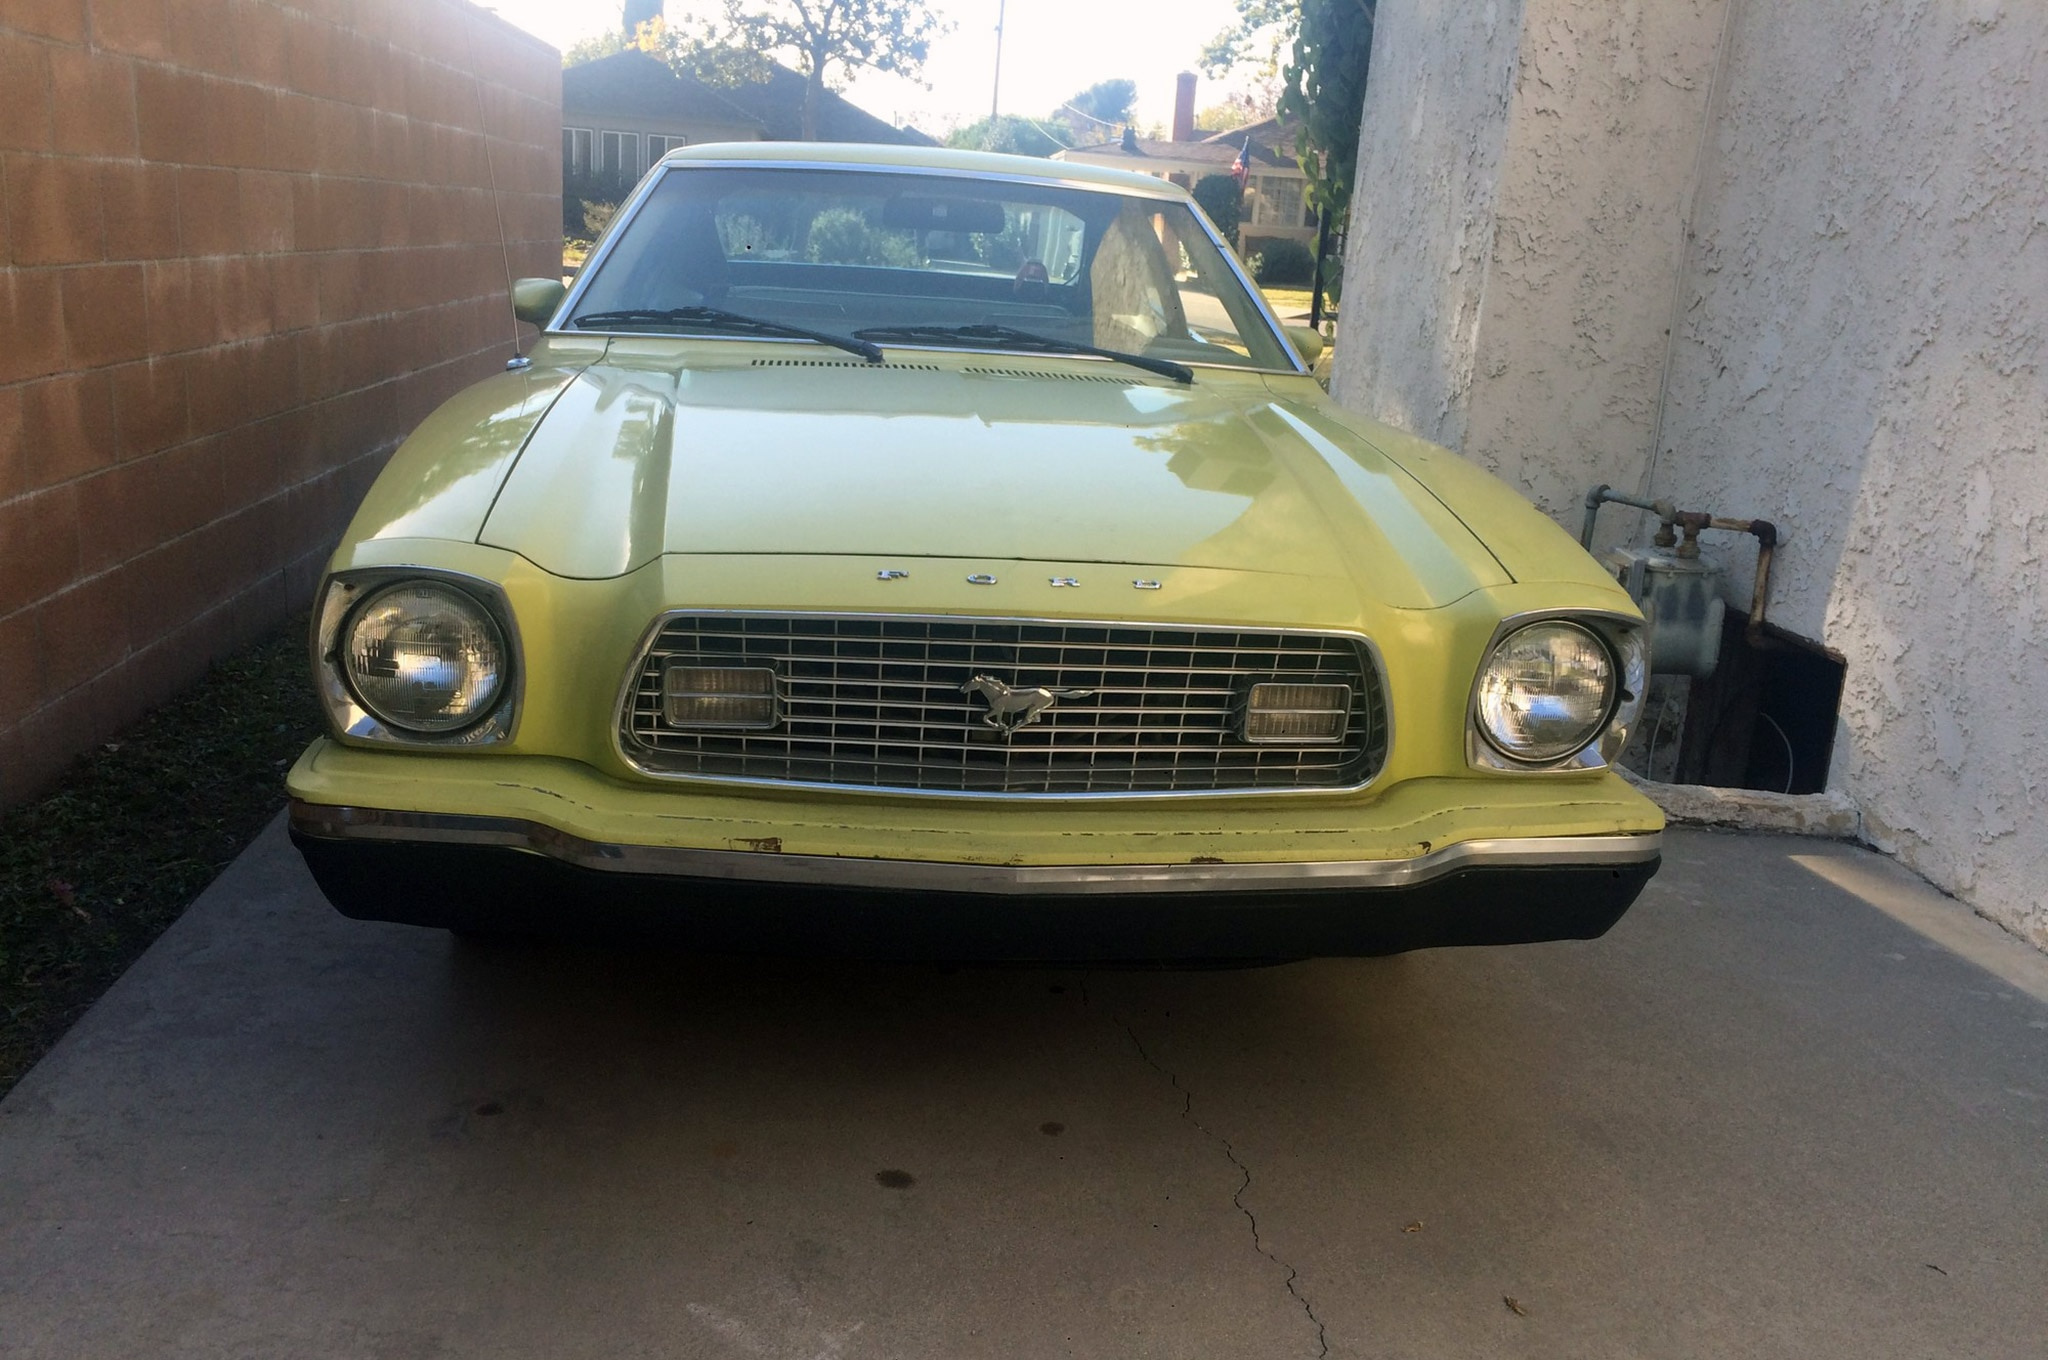 1974 Ford Mustang Ii Project Rodney Finale 09